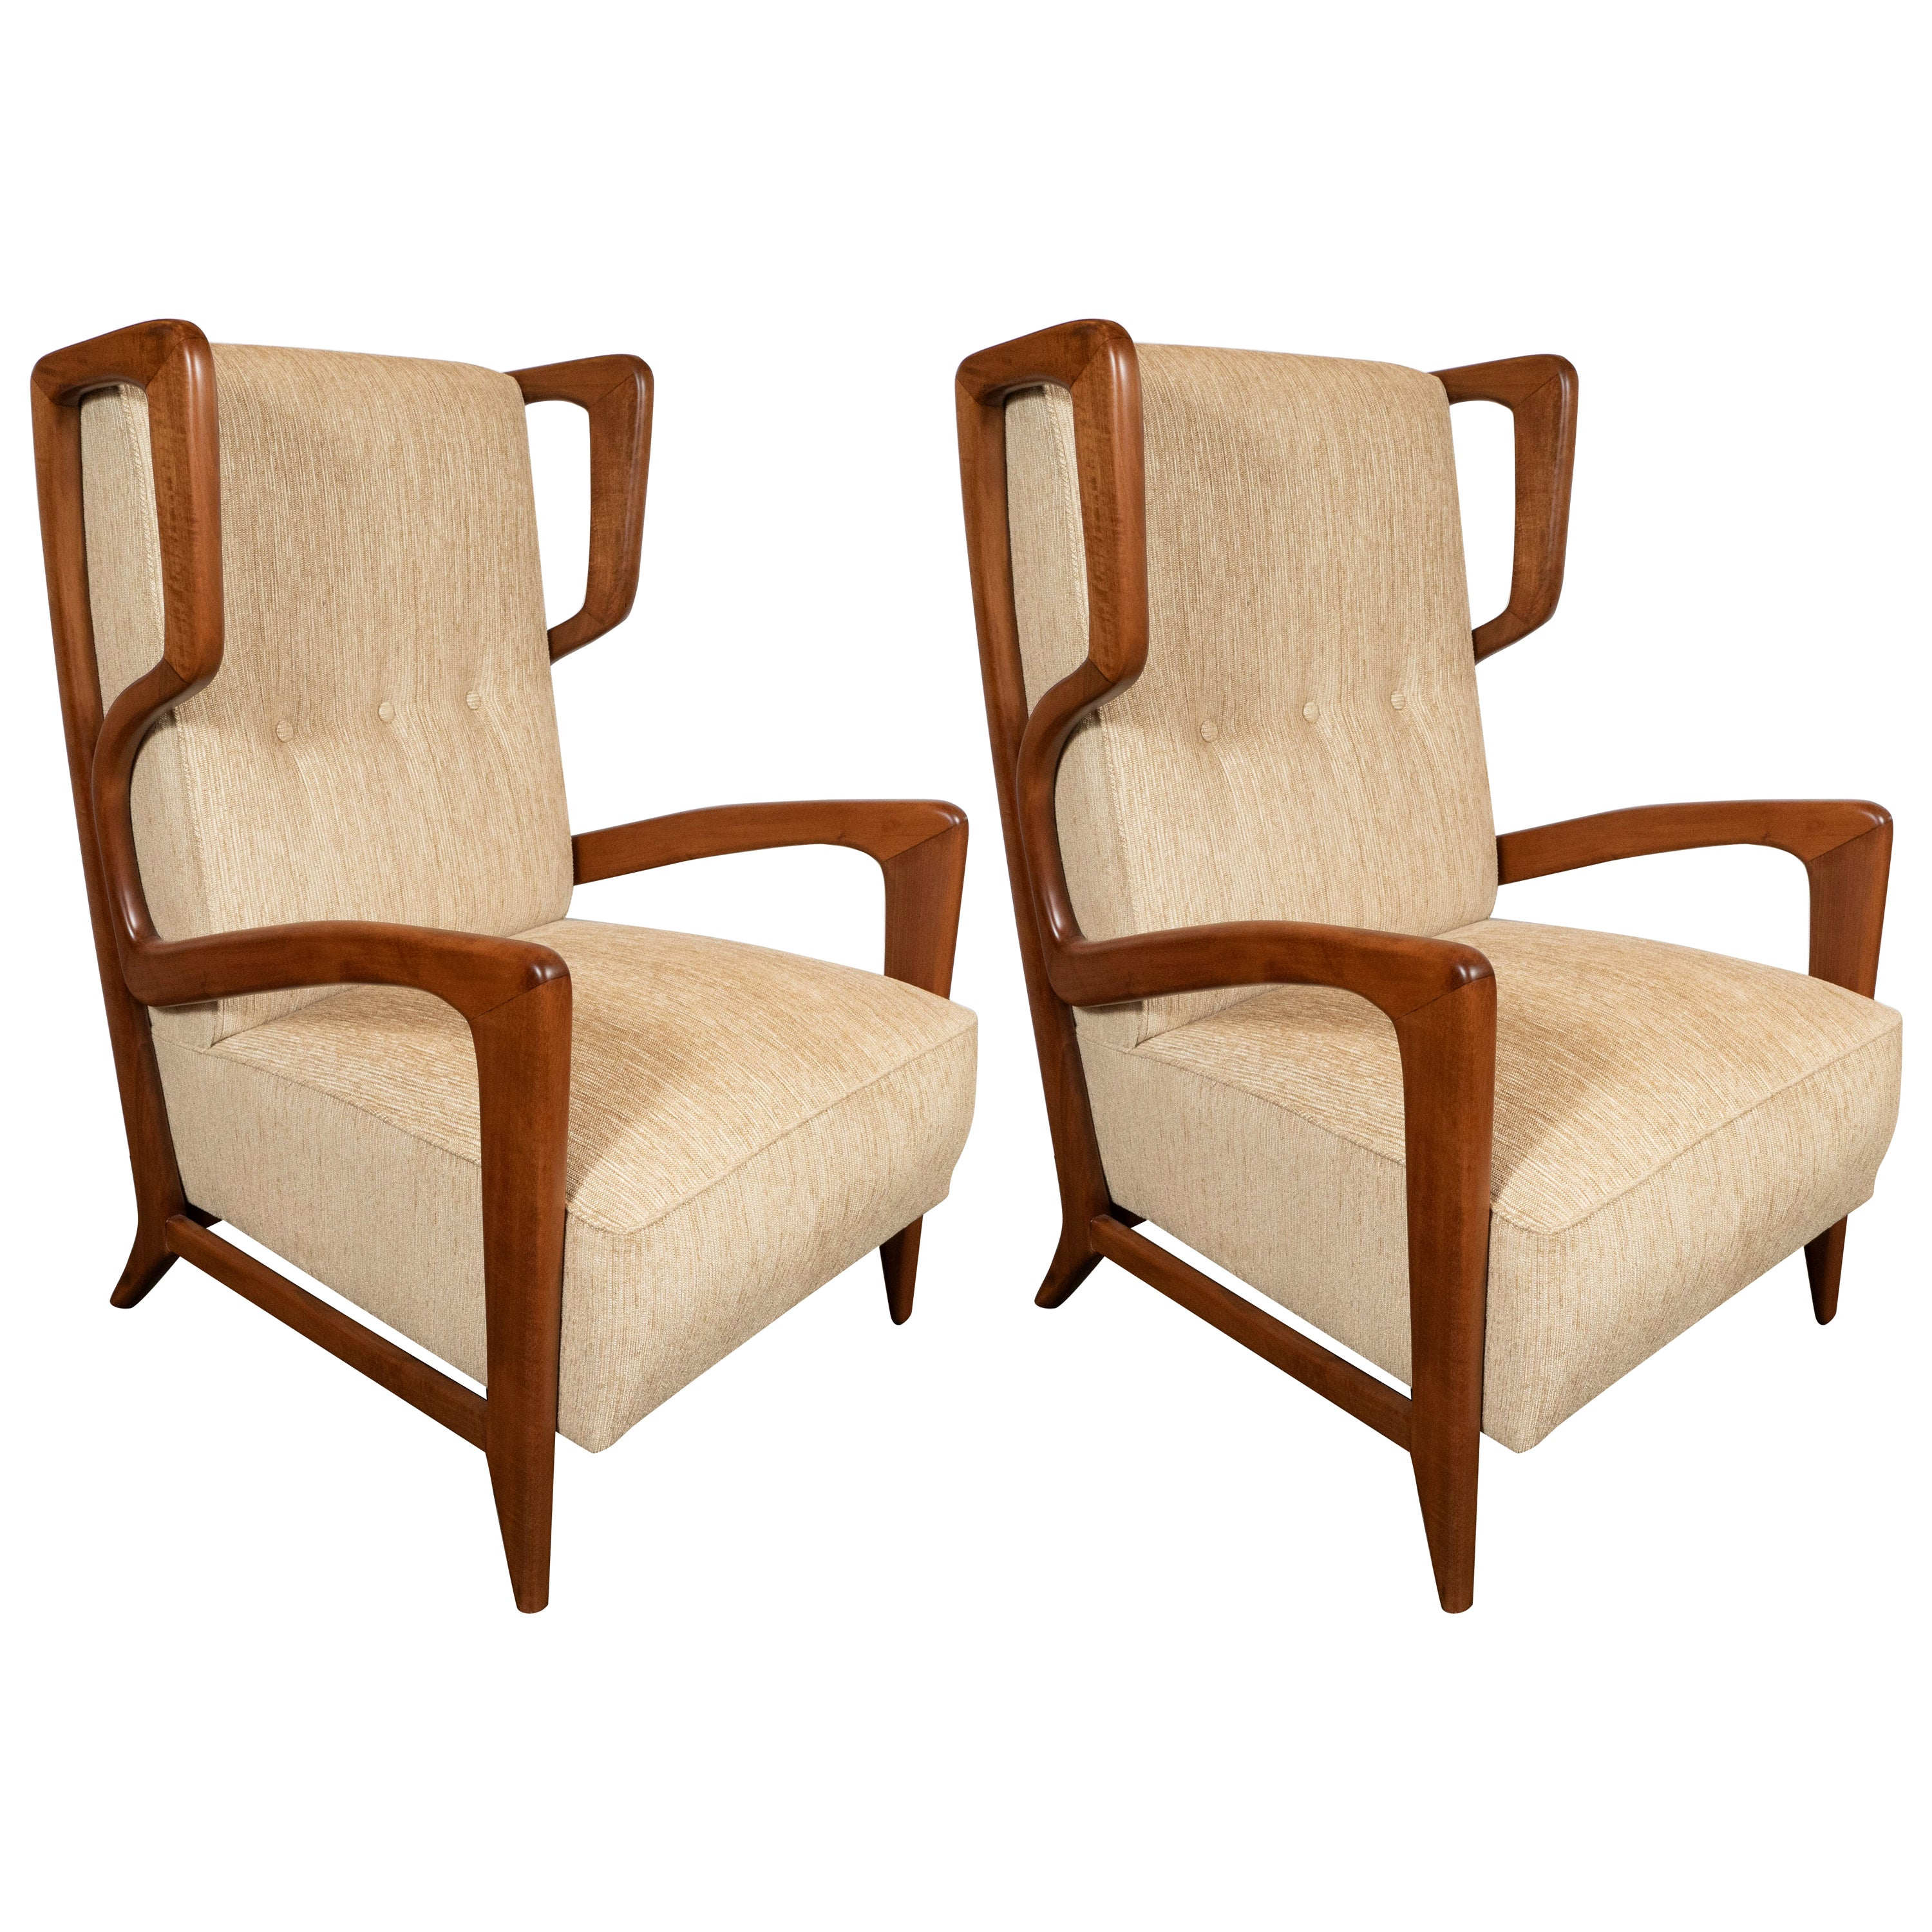 Pair of Sculptural Midcentury Button Back Handrubbed Walnut Lounge Chairs